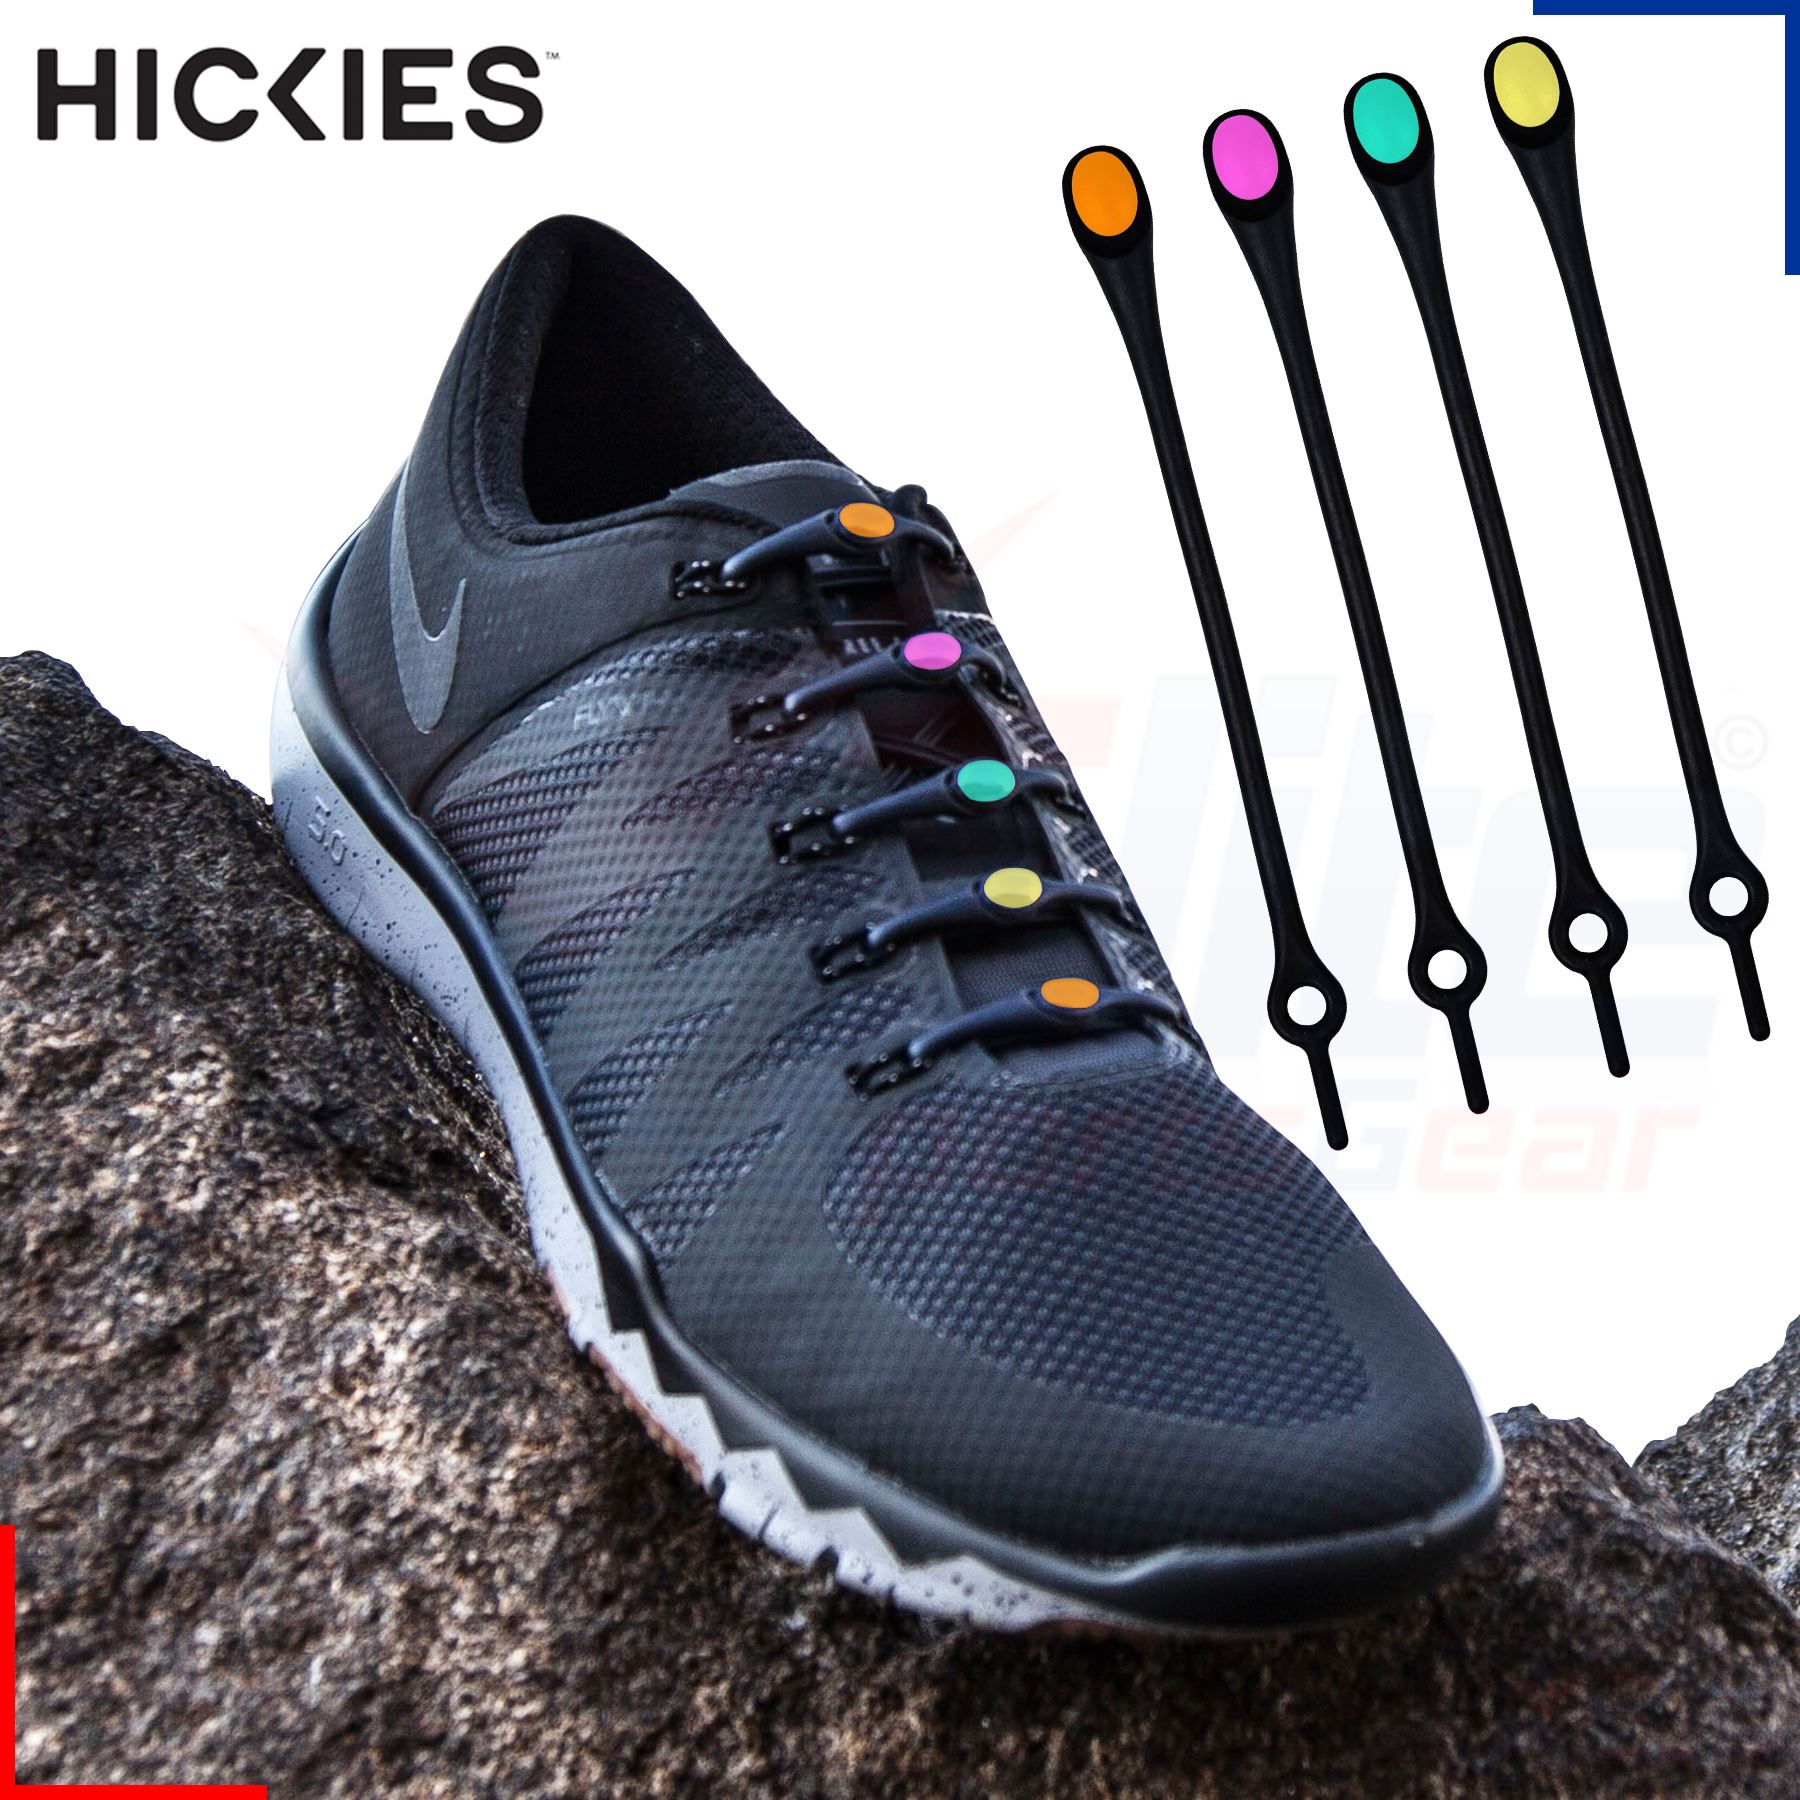 14 Hickies Elastic Trainer Lacing Replacement Sytem - No ...